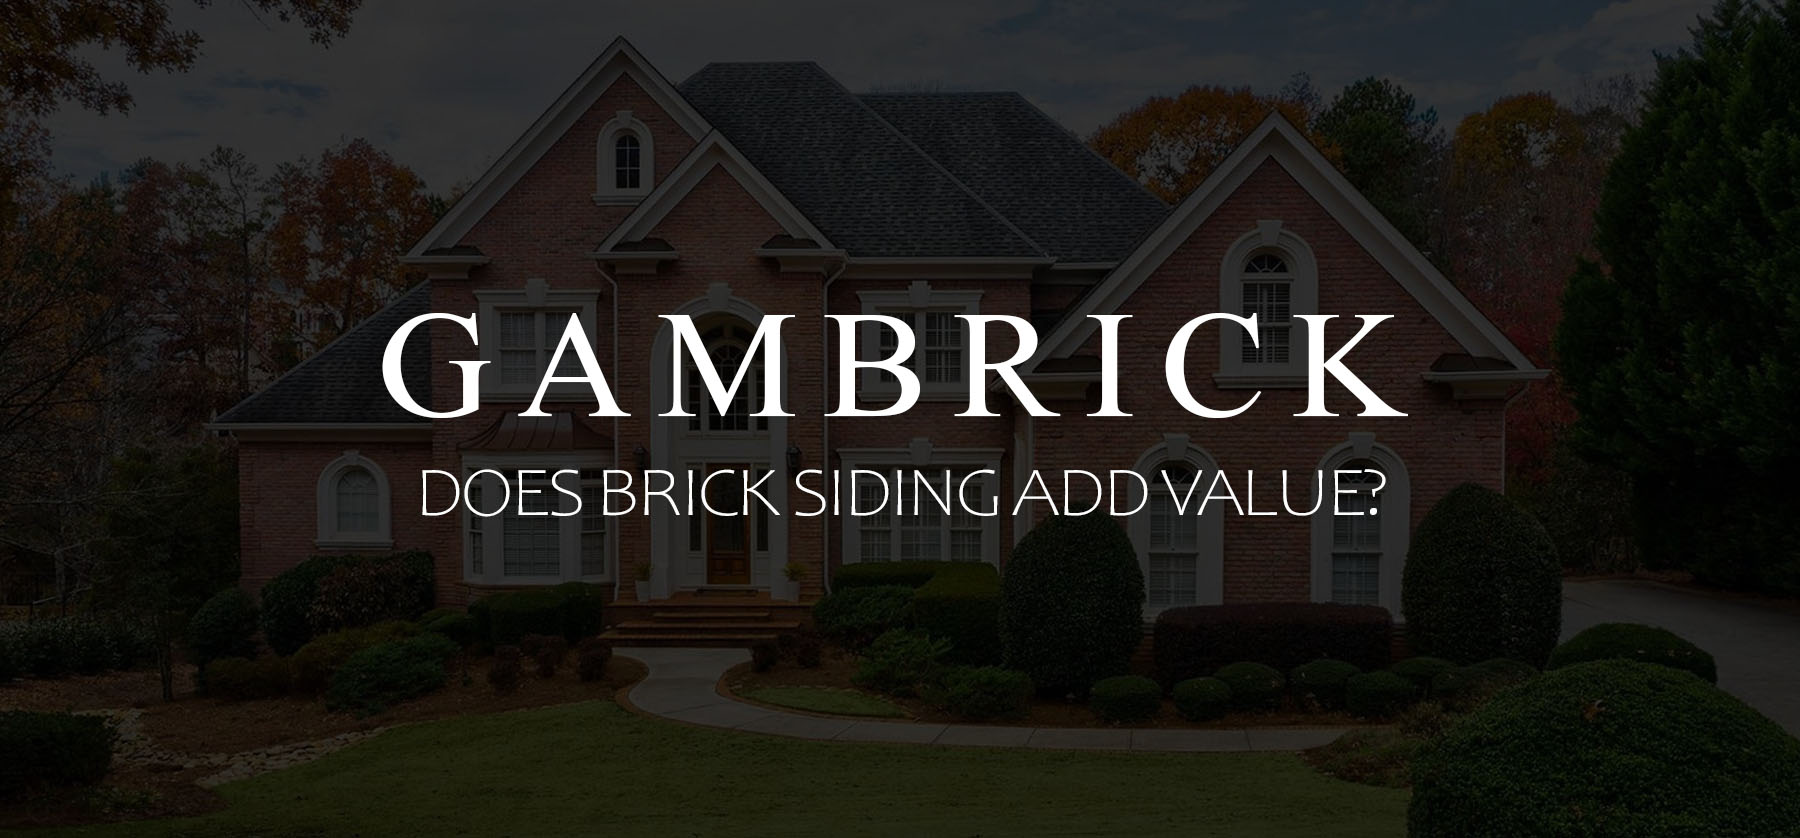 does brick siding add value banner pic